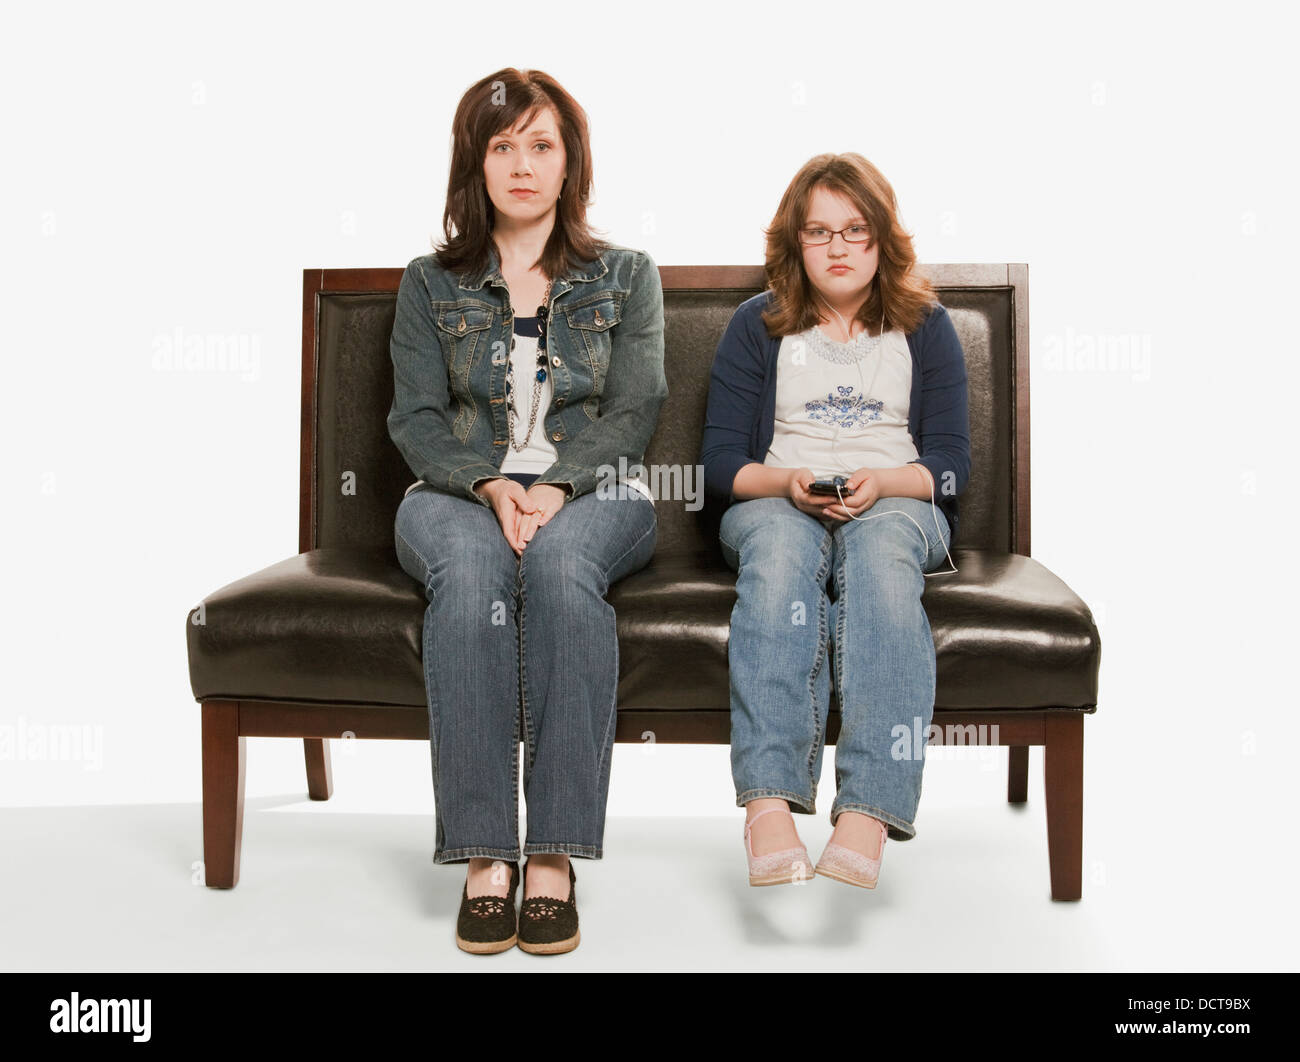 Mother And Daughter Ignoring Each Other; Edmonton, Alberta, Canada - Stock Image